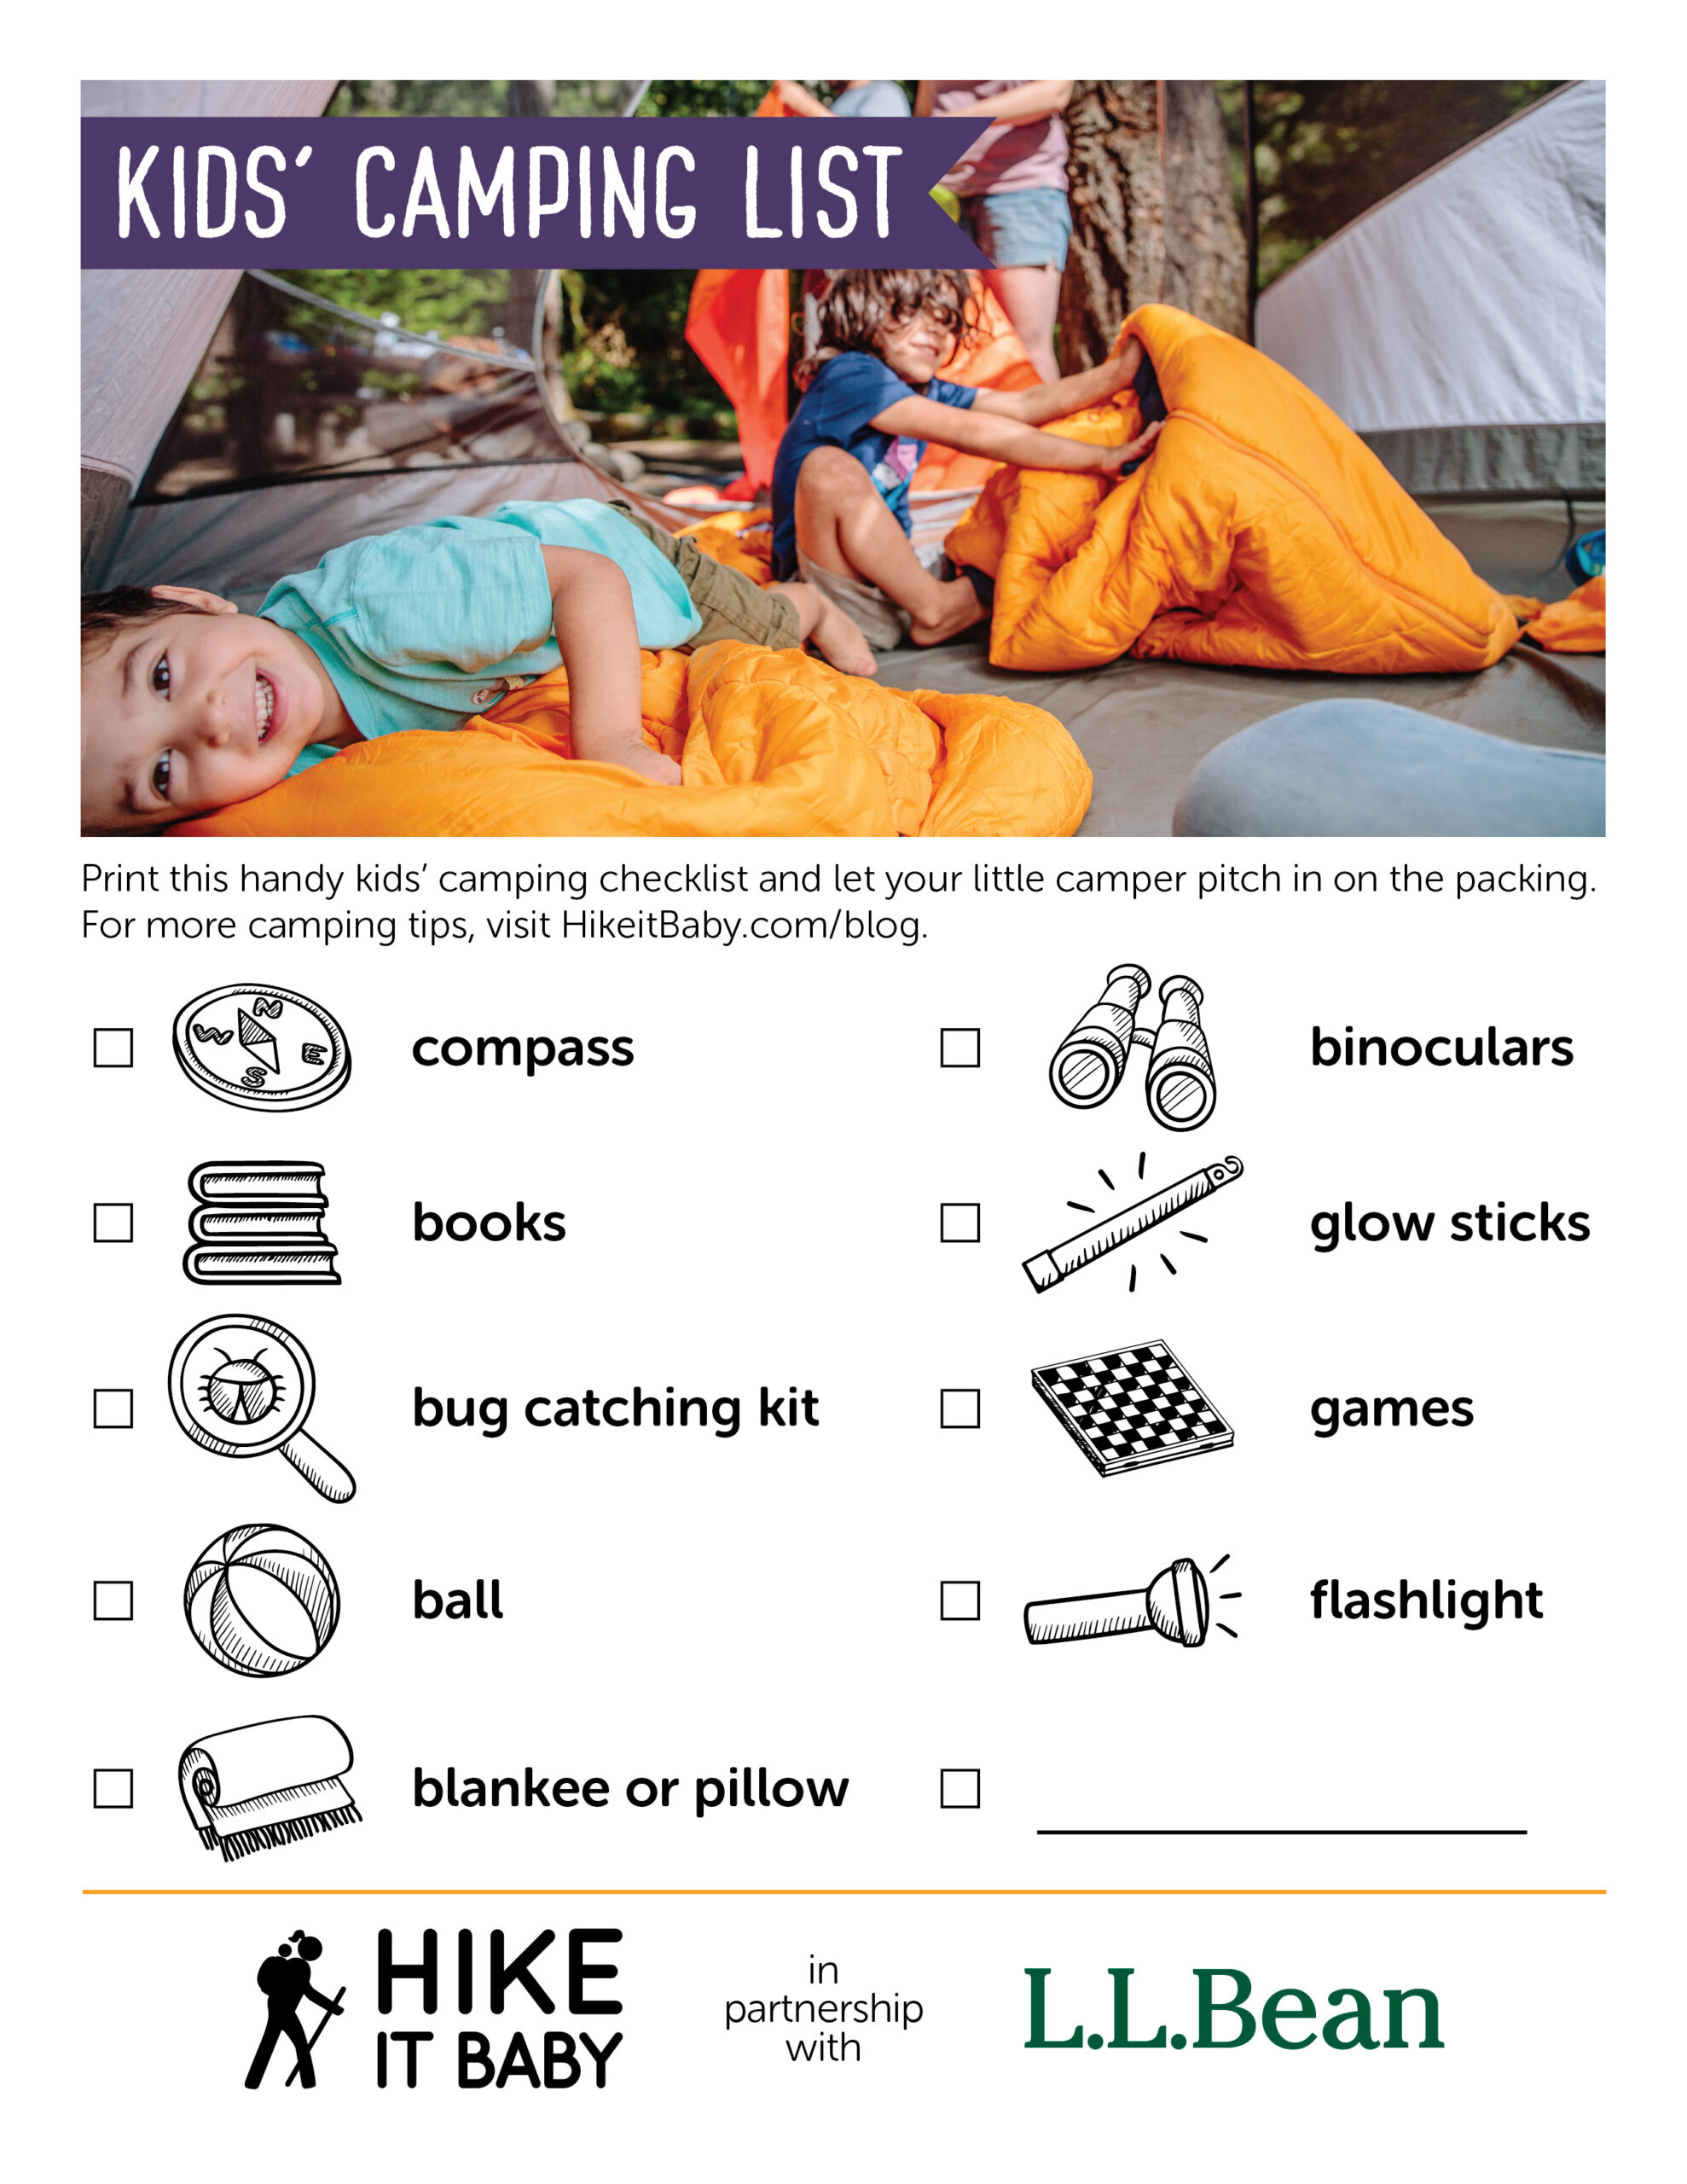 Kids' Camping Checklist sponsored by LL Bean activity sheet download